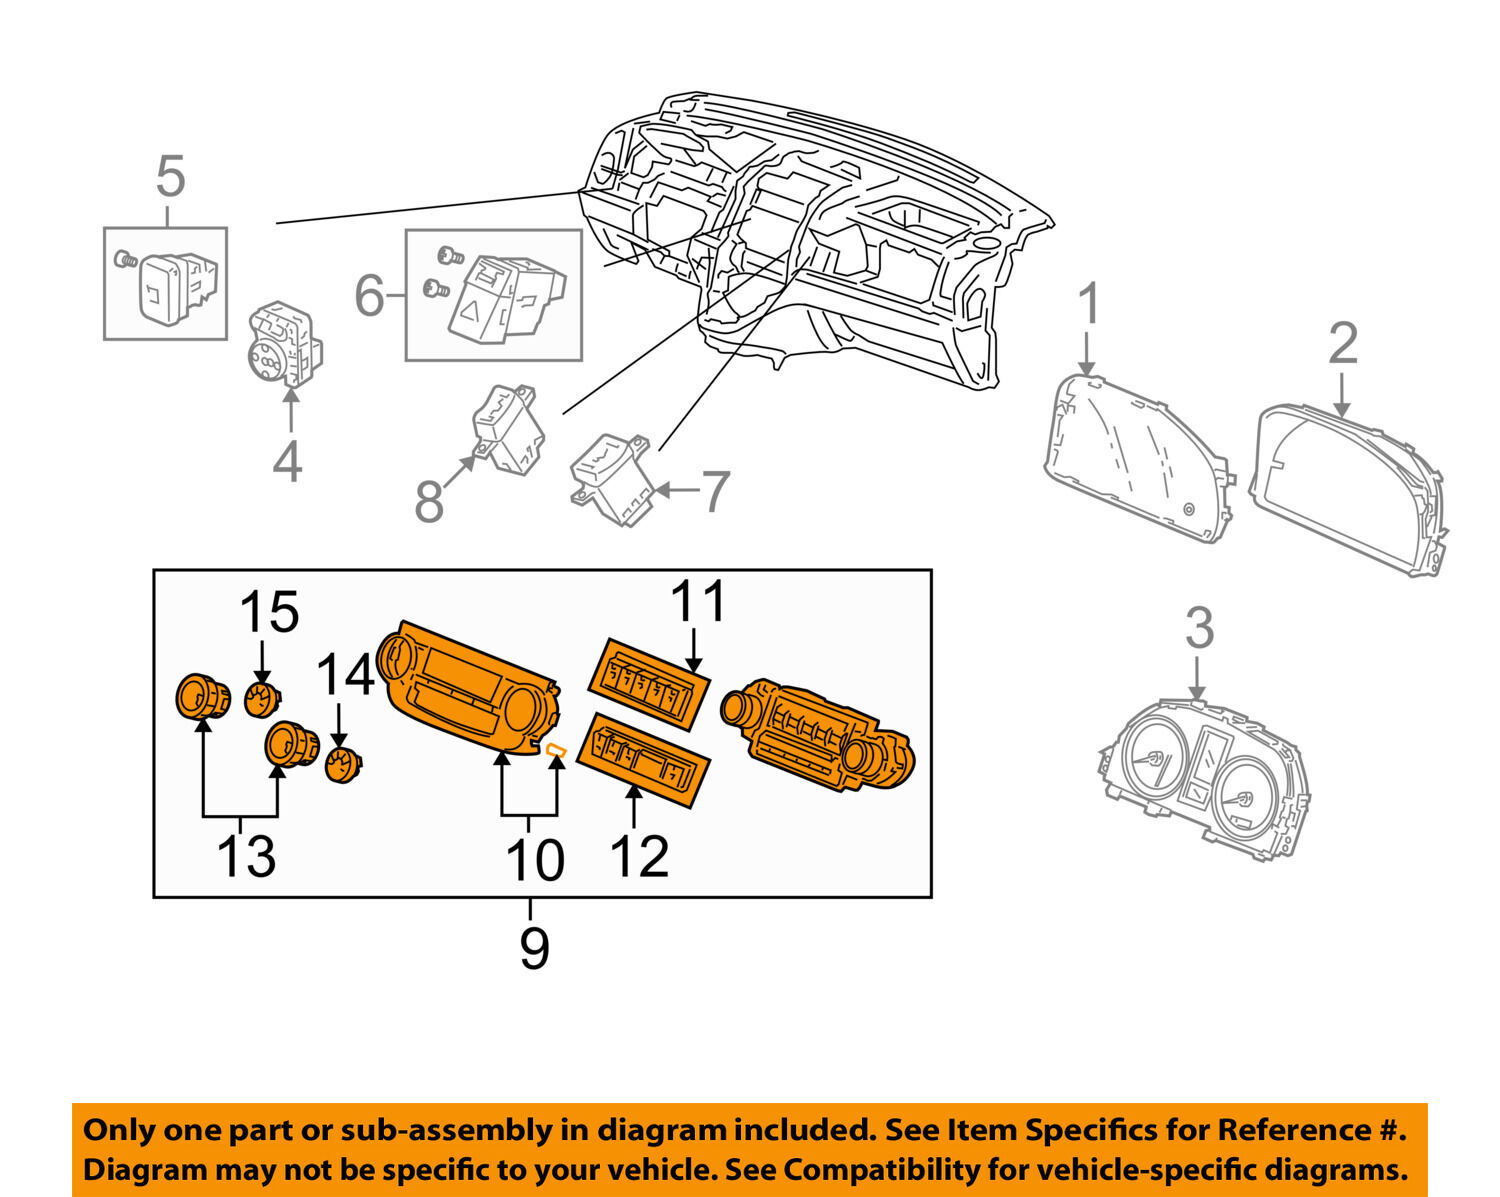 Honda Oem Cr V Climate Control Unit Temperature Fan Heater A C Crv Diagram 79500swaa12za 1 Of 2only Available